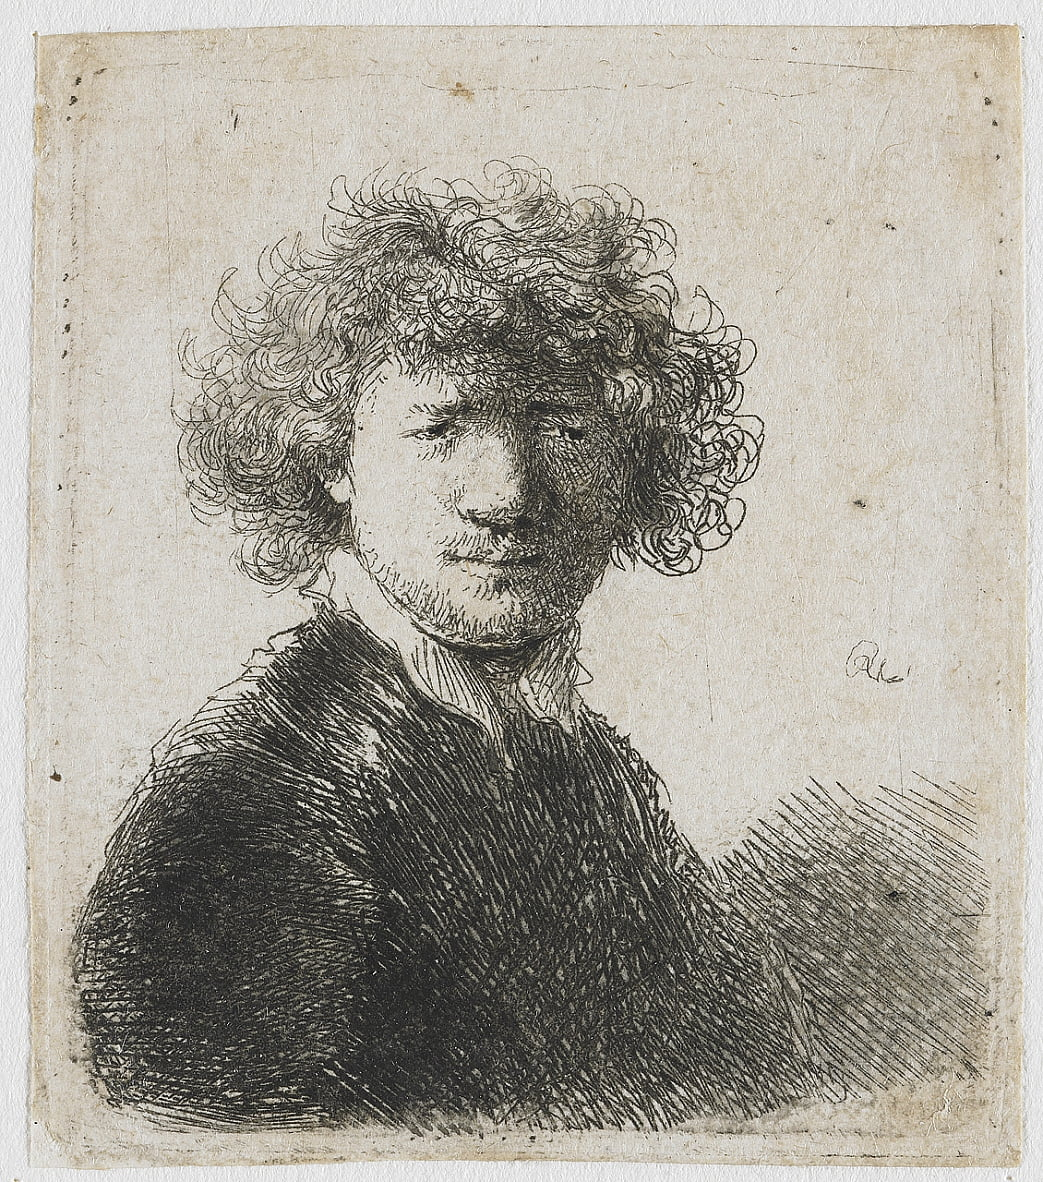 Self-portrait with curly hair and white collar by Rembrandt van Rijn